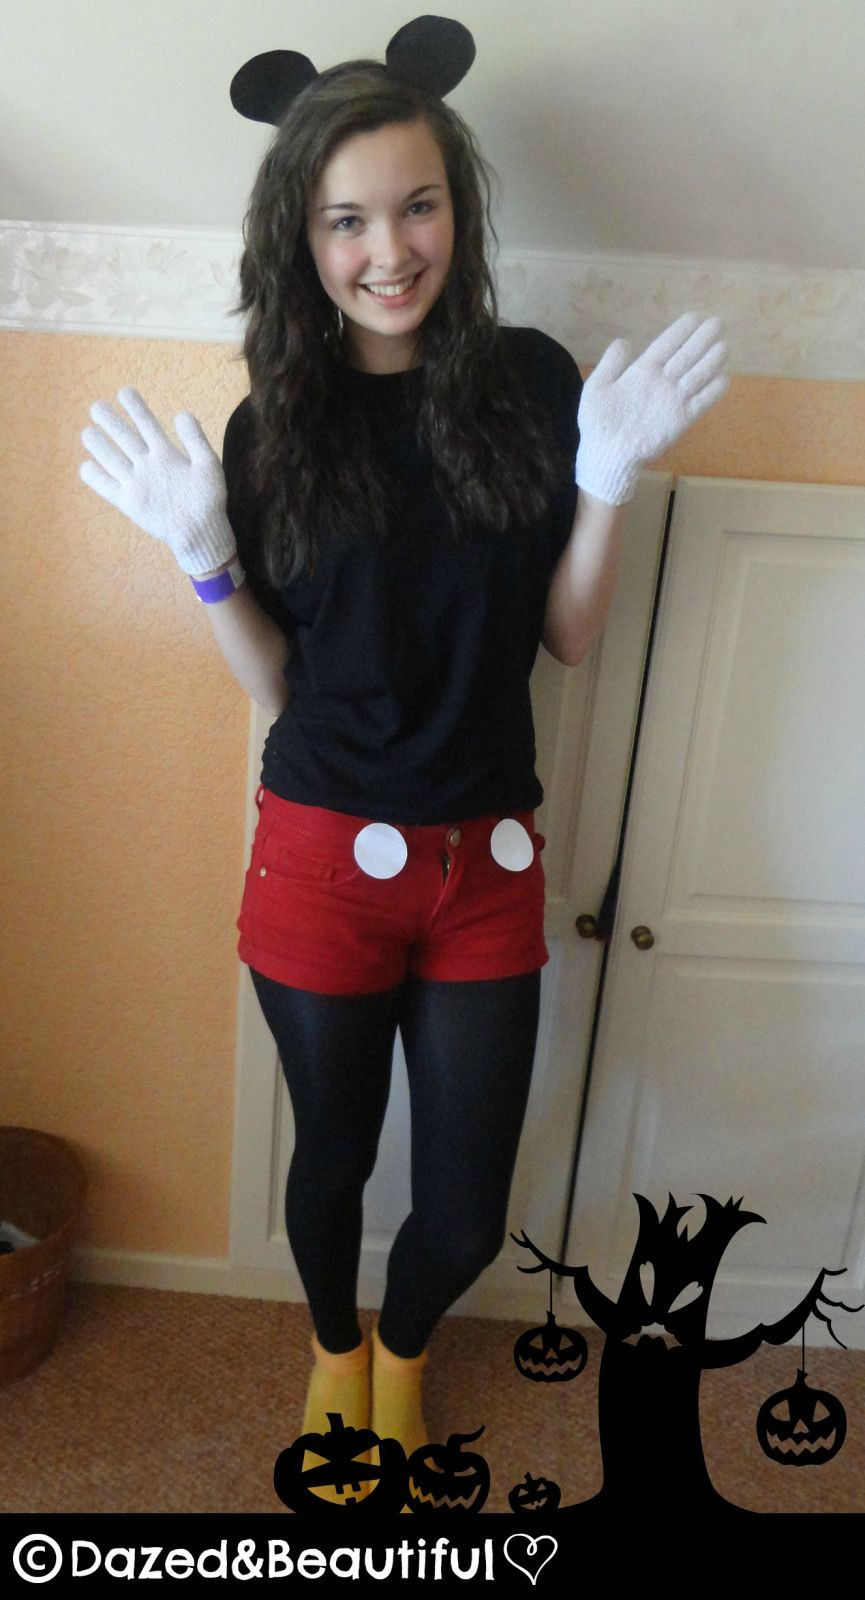 Mickey Mouse Costume DIY  DIY Mickey Mouse Costume im so this 4 halloween